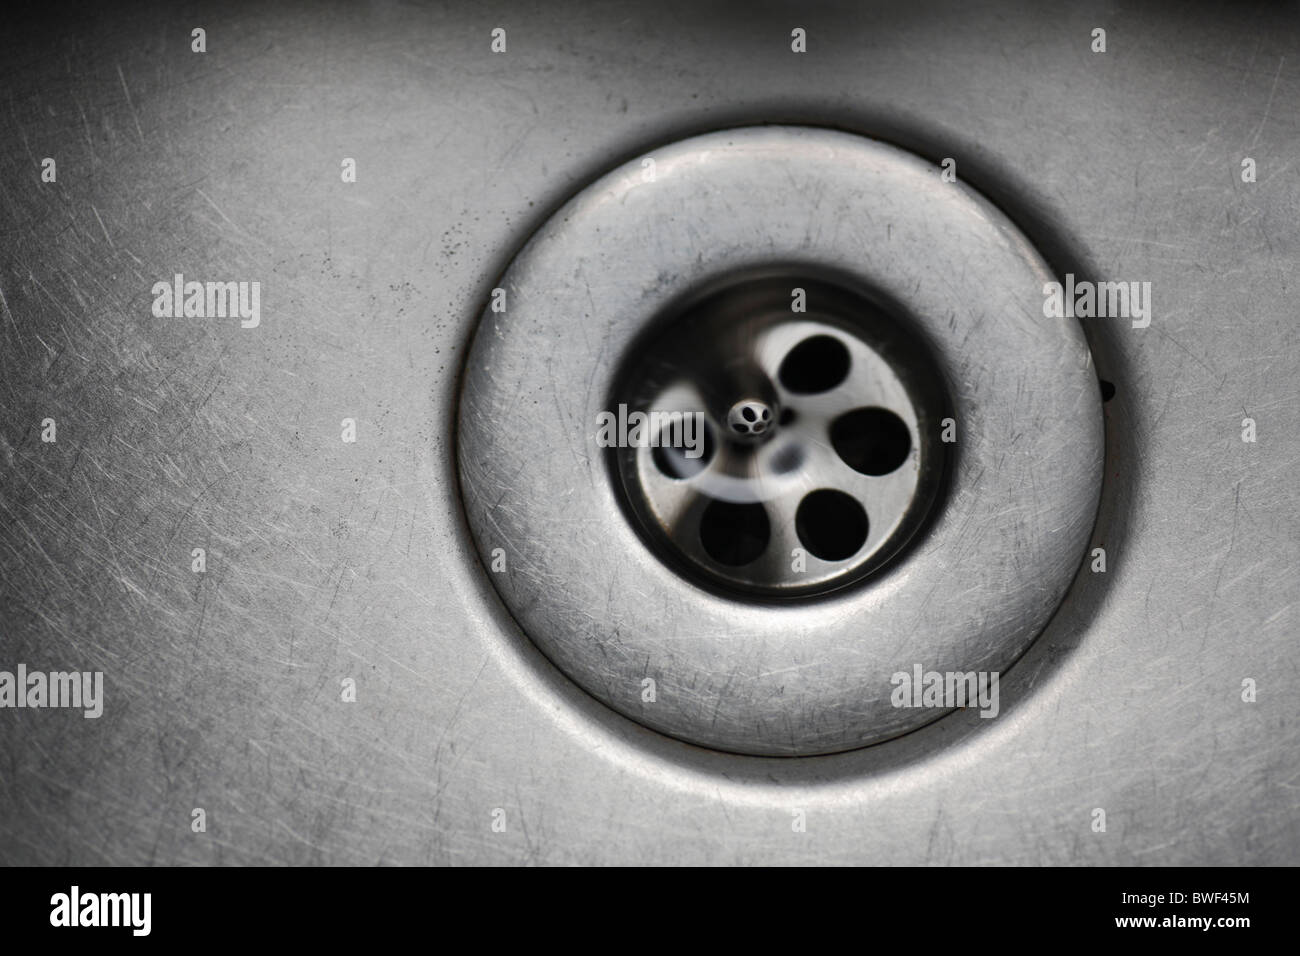 Water disappearing down the plug hole in a sink. - Stock Image